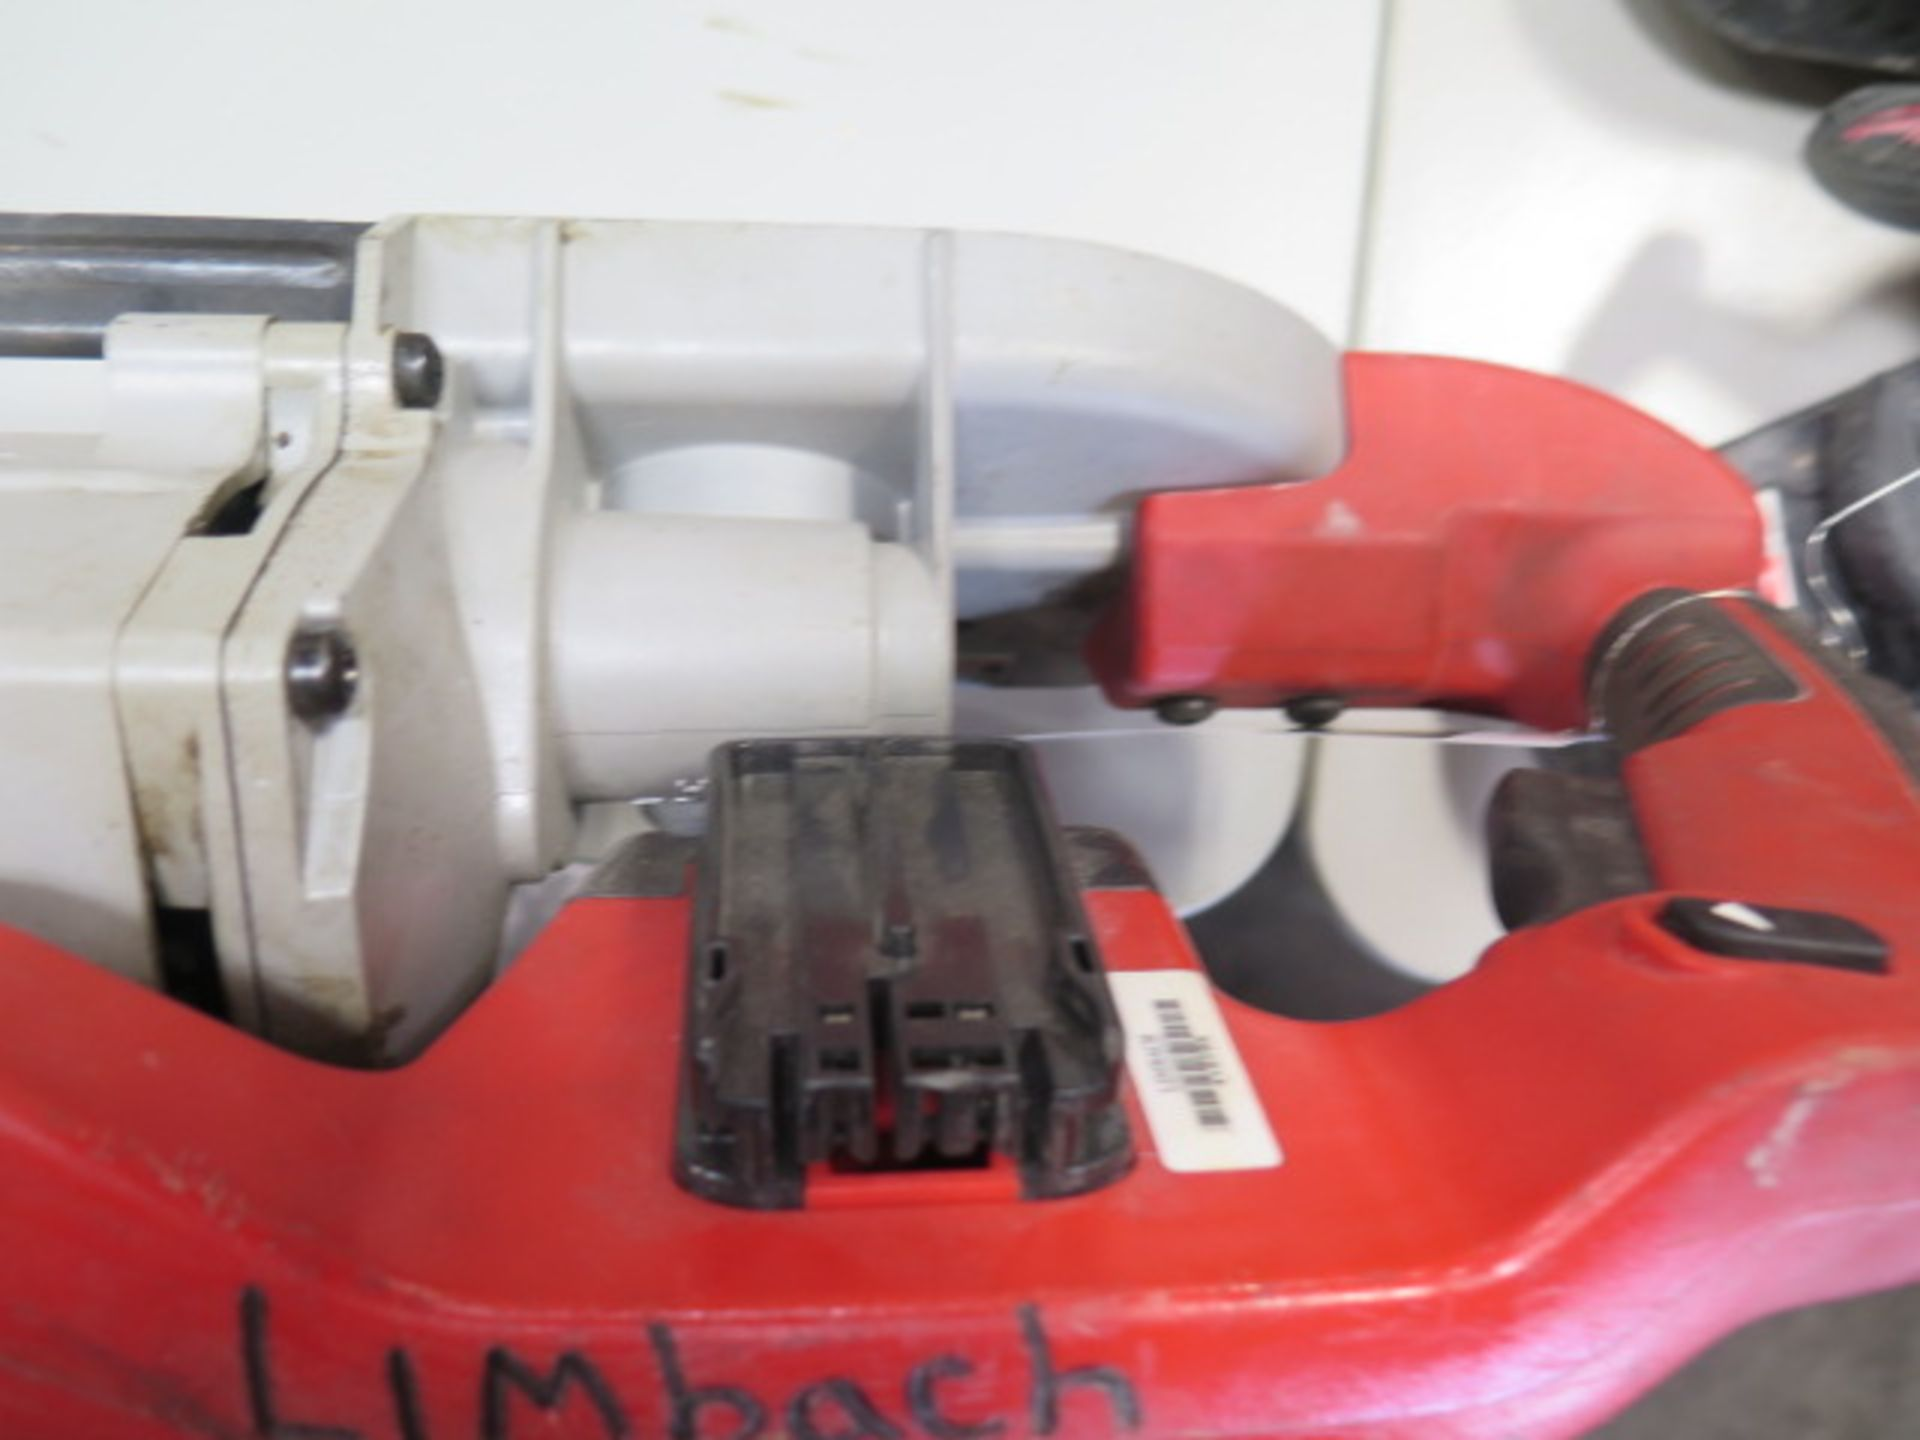 Milwaukee 18 Volt Deep Cut Portable Band Saw (SOLD AS-IS - NO WARRANTY) - Image 4 of 5